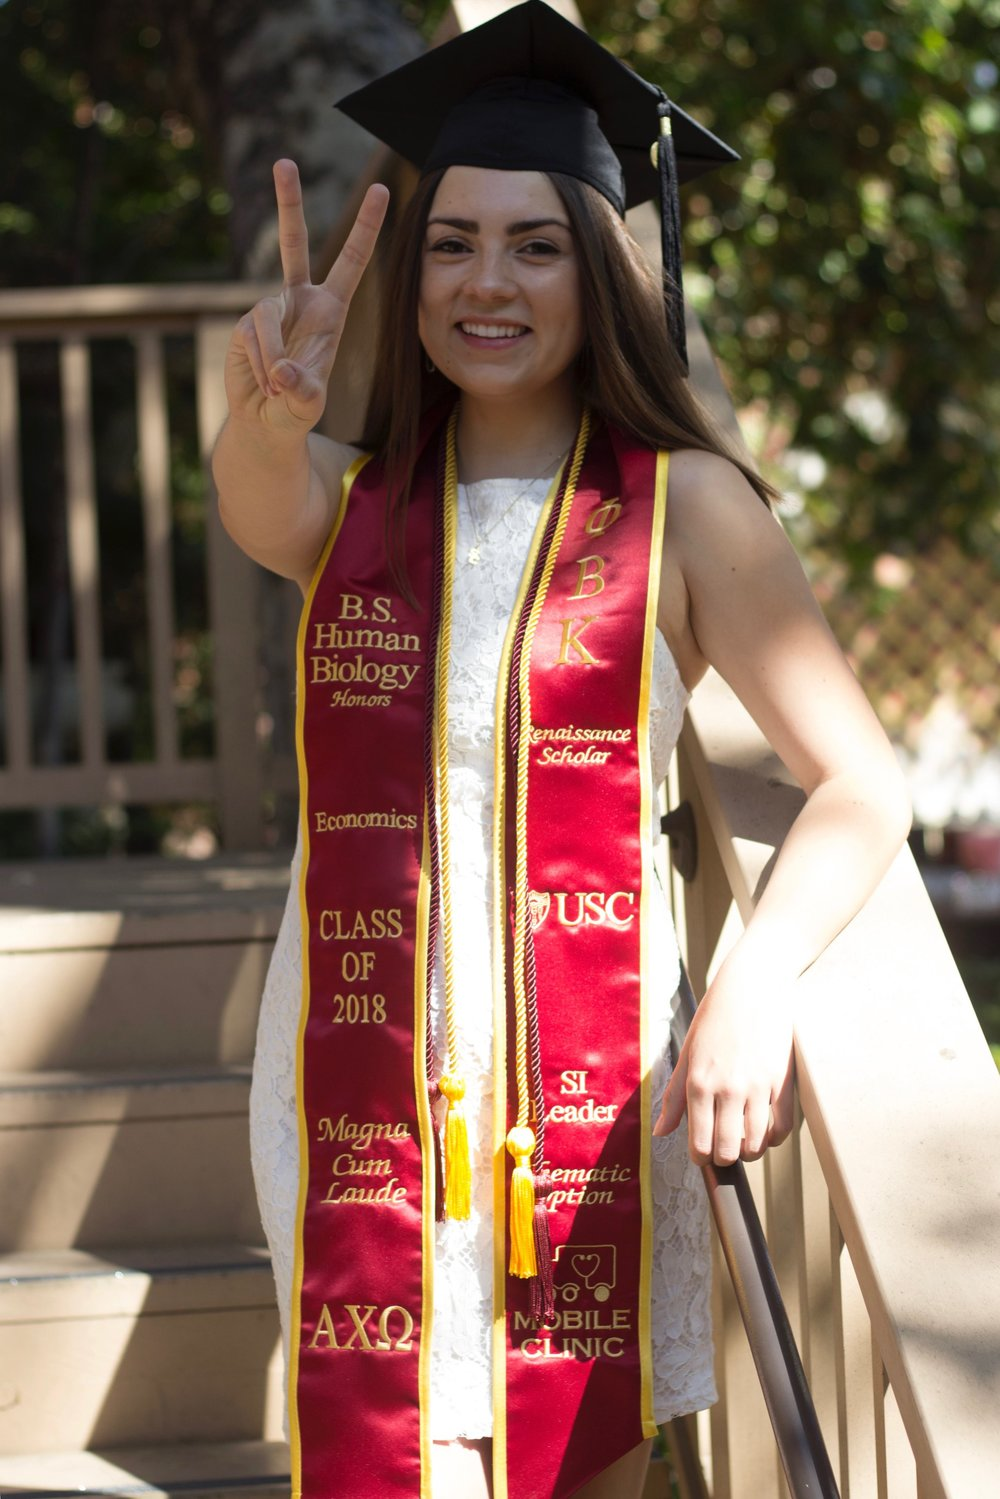 katie jillson general member    HOMETOWN:  albuquerque, new mexico  MAJOR:  B.s. human biology  MINOR:  economics  Favorite thing about mobile clinic:  I am so thankful for my time with Mobile Clinic, as it allowed me to give back to my community while also inspiring my passion for medicine and community service. I hope to continue with similar programs during medical school and as a practicing physician.  Plans after graduation:  During my gap year, I plan to volunteer with Market Match/Double Up, a program that provides extra funds to individuals receiving EBT to spend at local farmers markets, incentivizing healthy eating. Working and shadowing physicians, I am excited to learn more about the field of medicine in preparation for my career. katie will be attending the tufts university school of medicine.